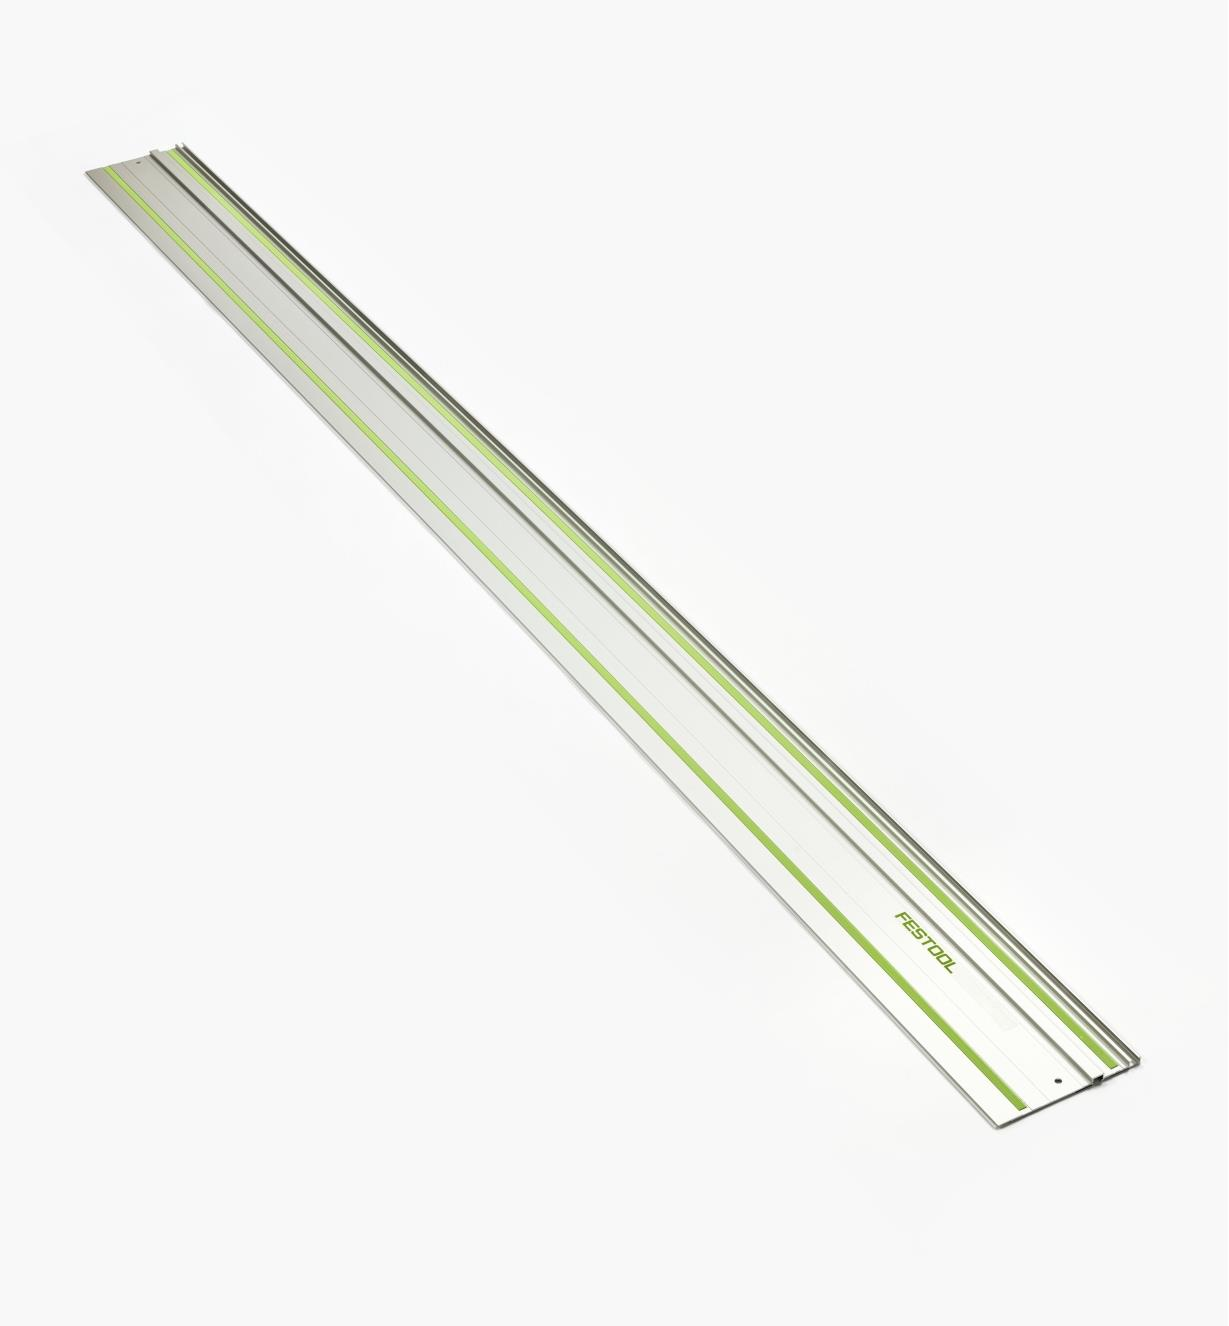 ZA491937 - Guide Rail FS 2700/2